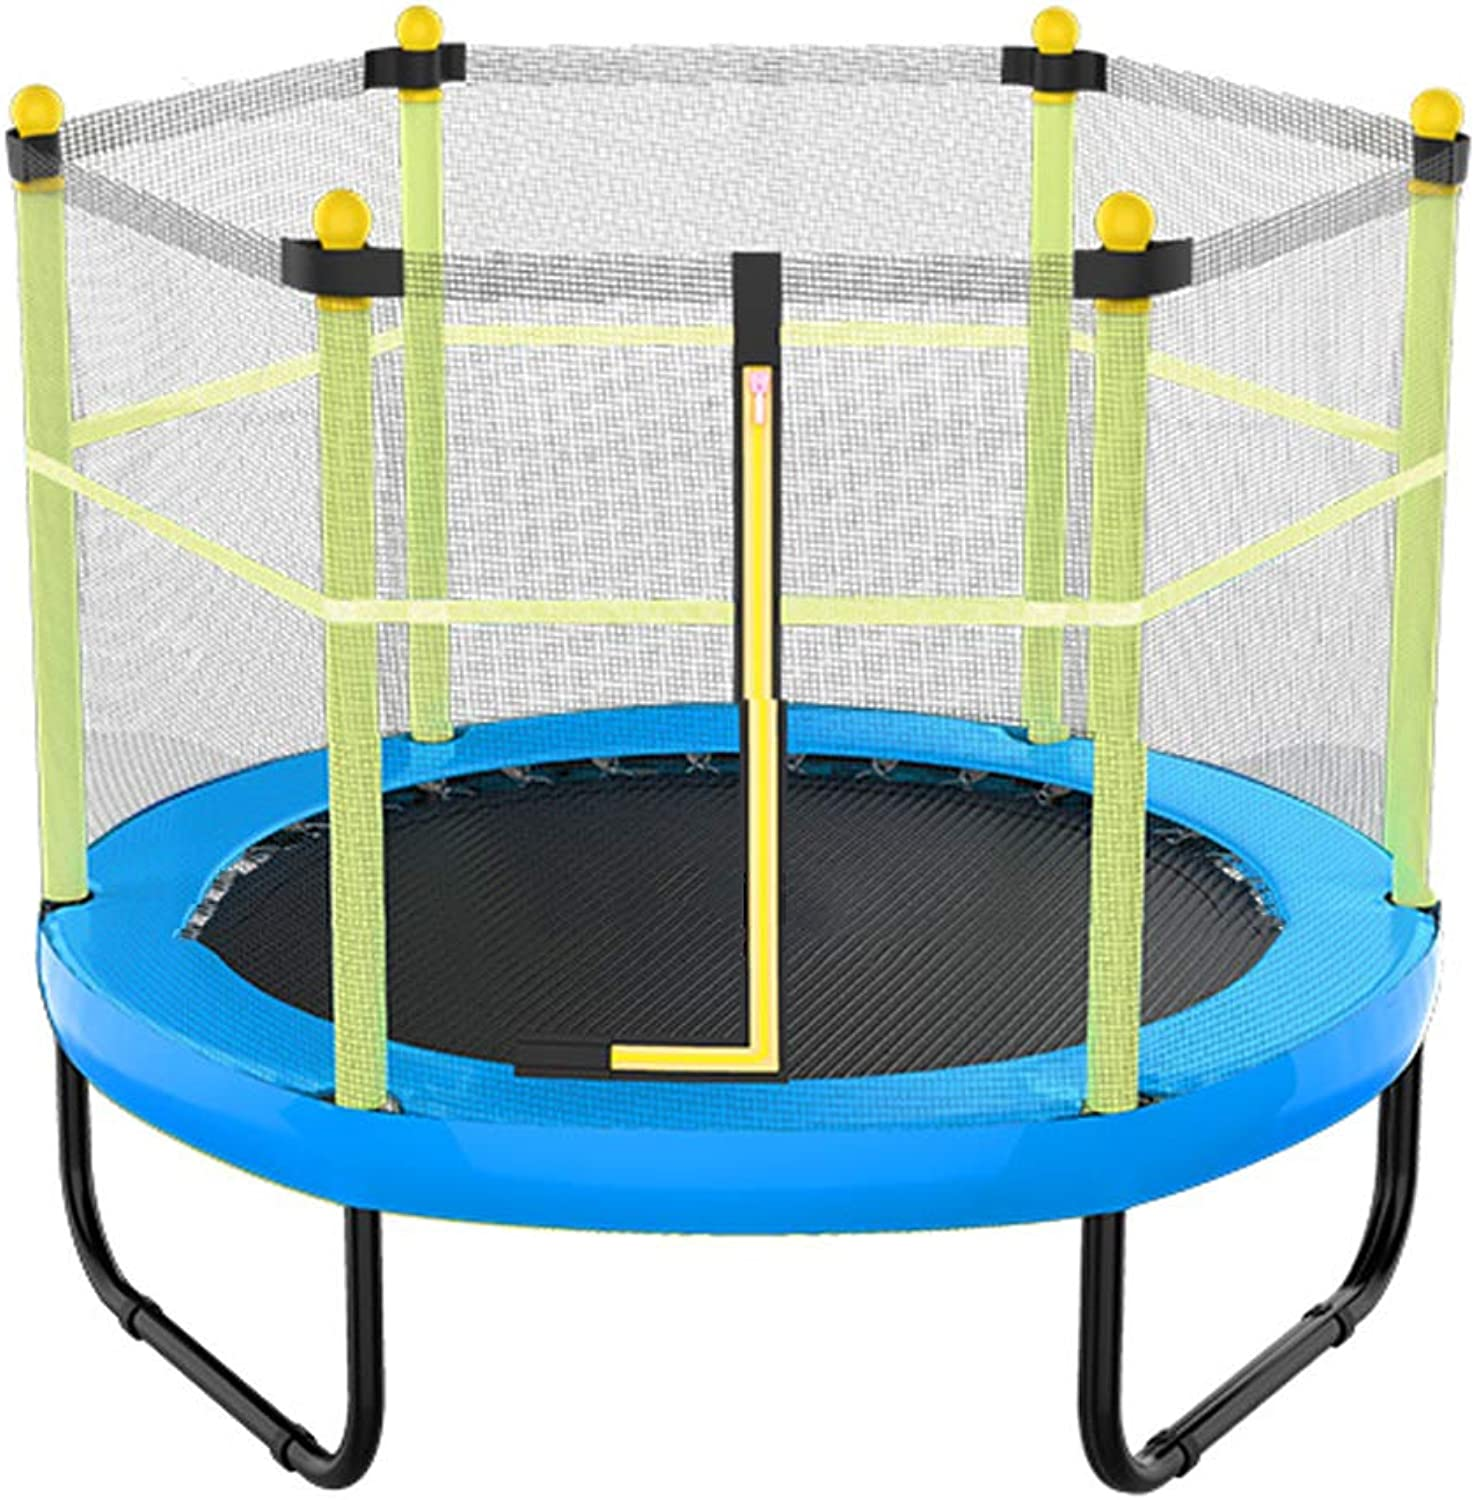 Household Mini Trampoline with Safety Enclosure Net Spring Cove 6 Poles Capacity to 200kg Exercise & Play Kids Junior Bouncer for Outdoor and Indoor